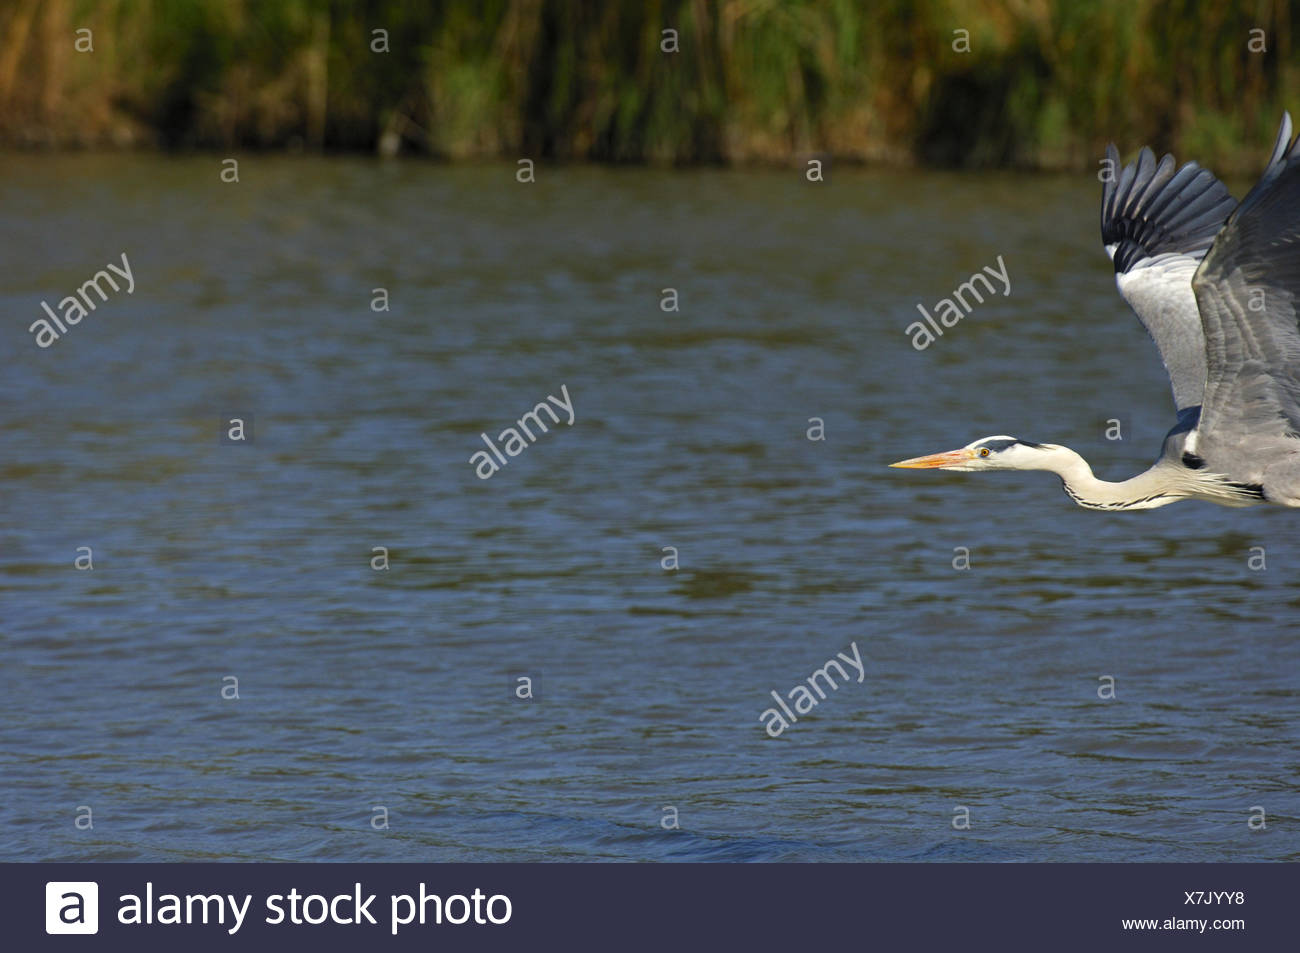 Flying Grey Heron,  copy-space on the right side - Stock Image